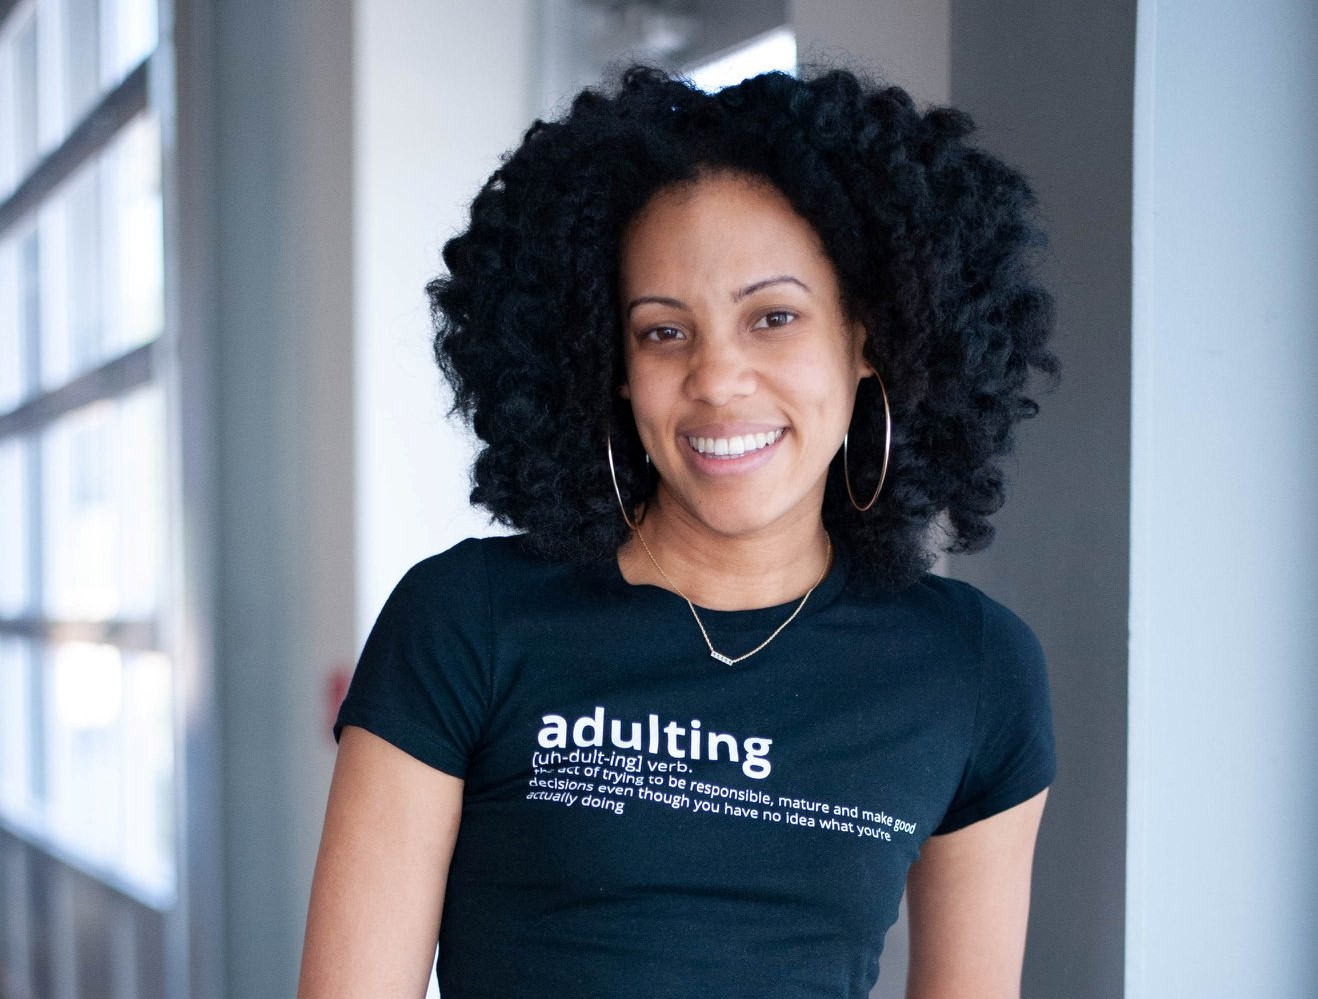 Young black woman smiles in t-shirt that says 'Adulting'